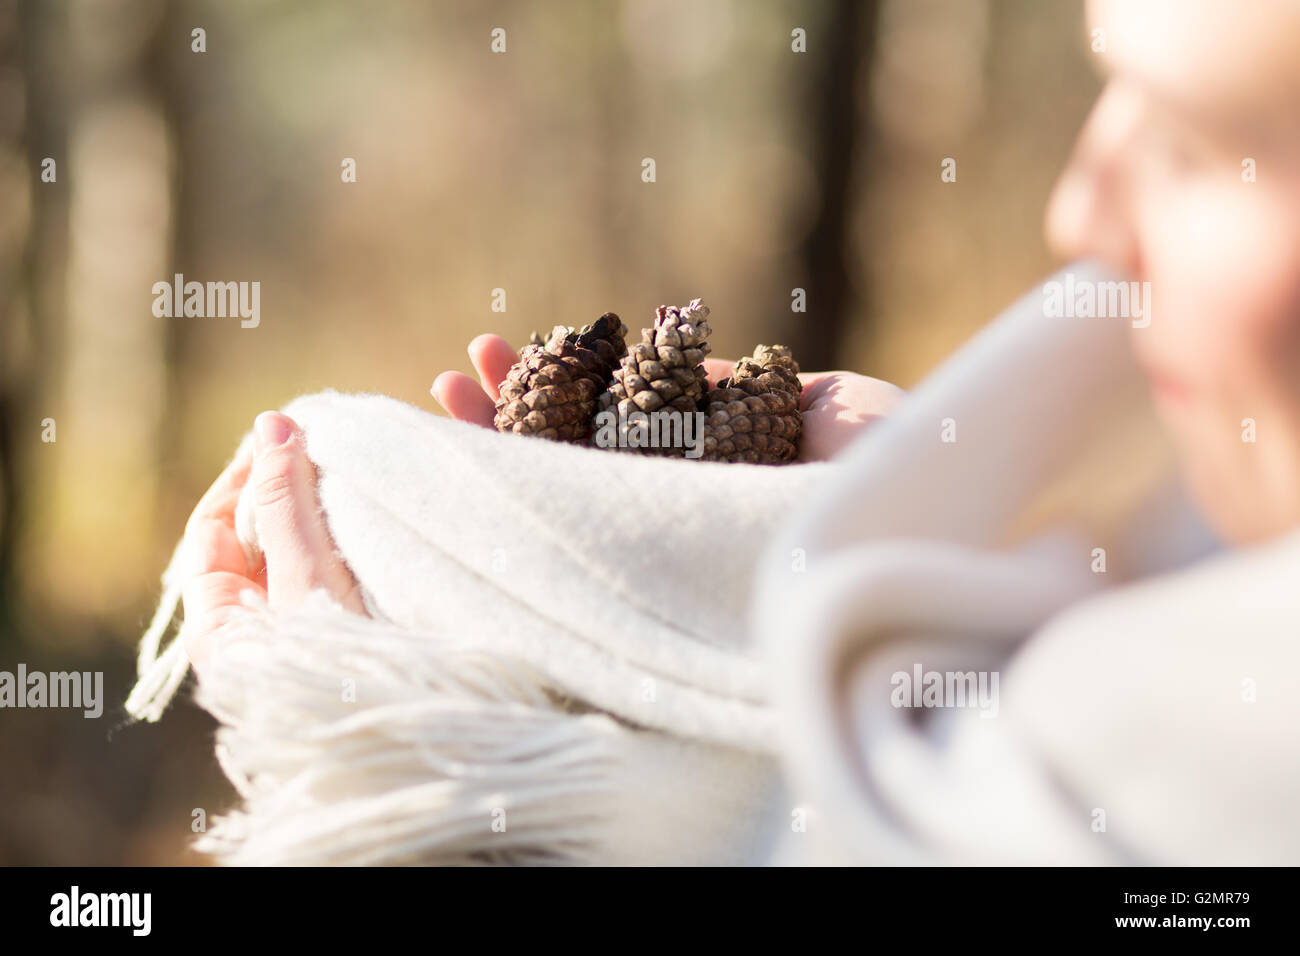 pinecones in the hands - close up - Stock Image